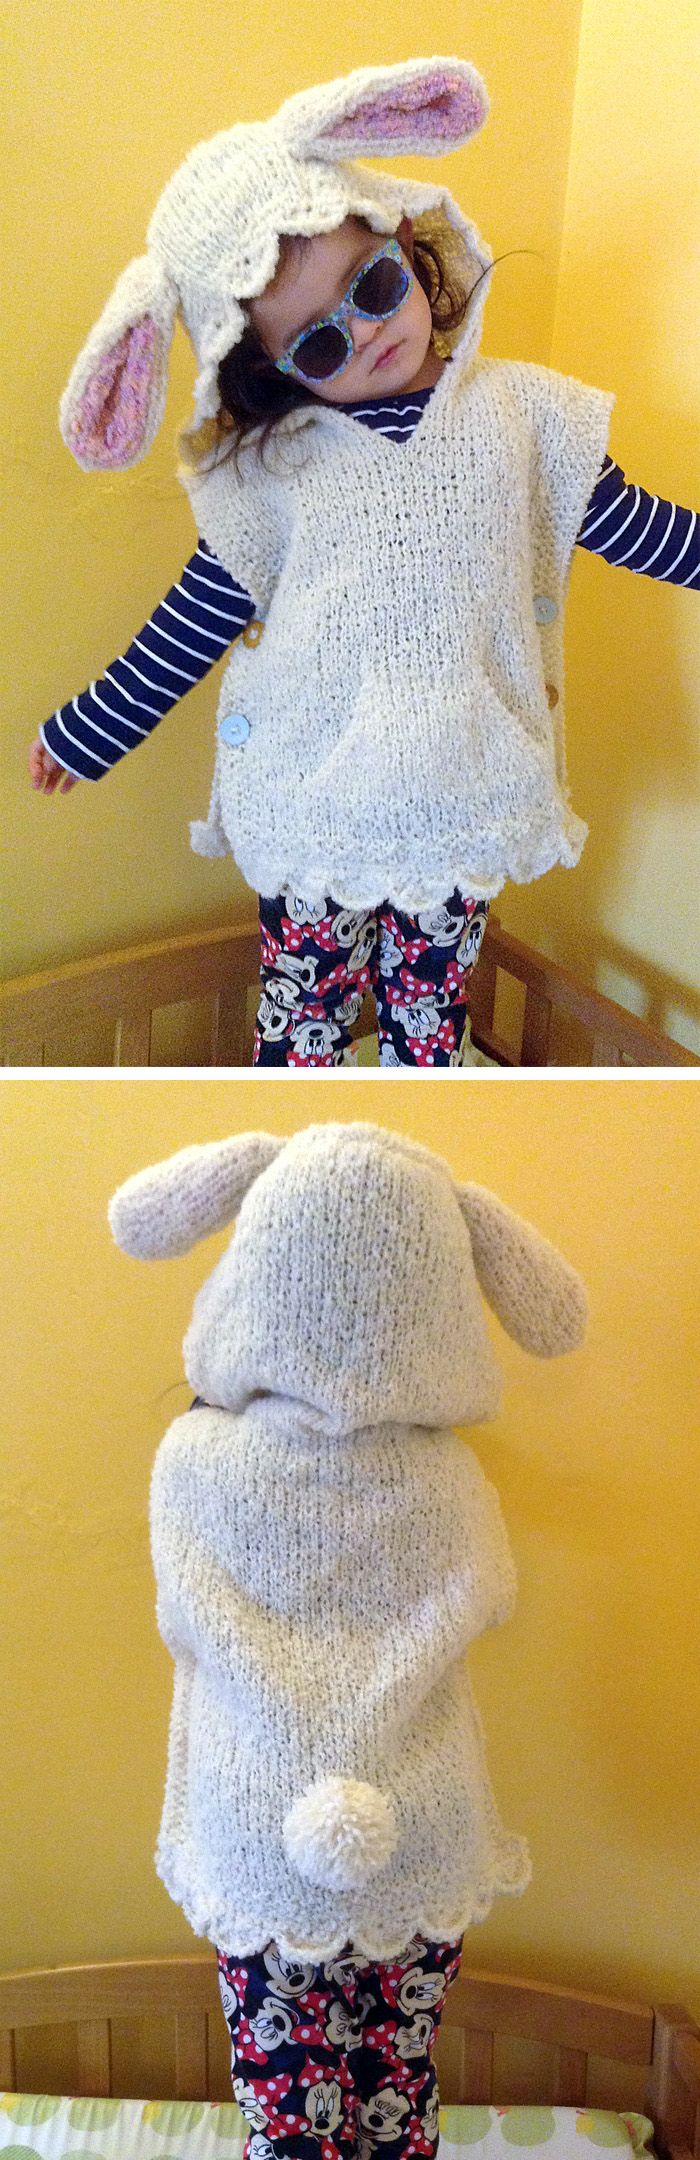 1340 best knitting babies kids images on pinterest free knitting pattern for cheeky rabbit poncho childs poncho with bunny hood with ears bankloansurffo Gallery